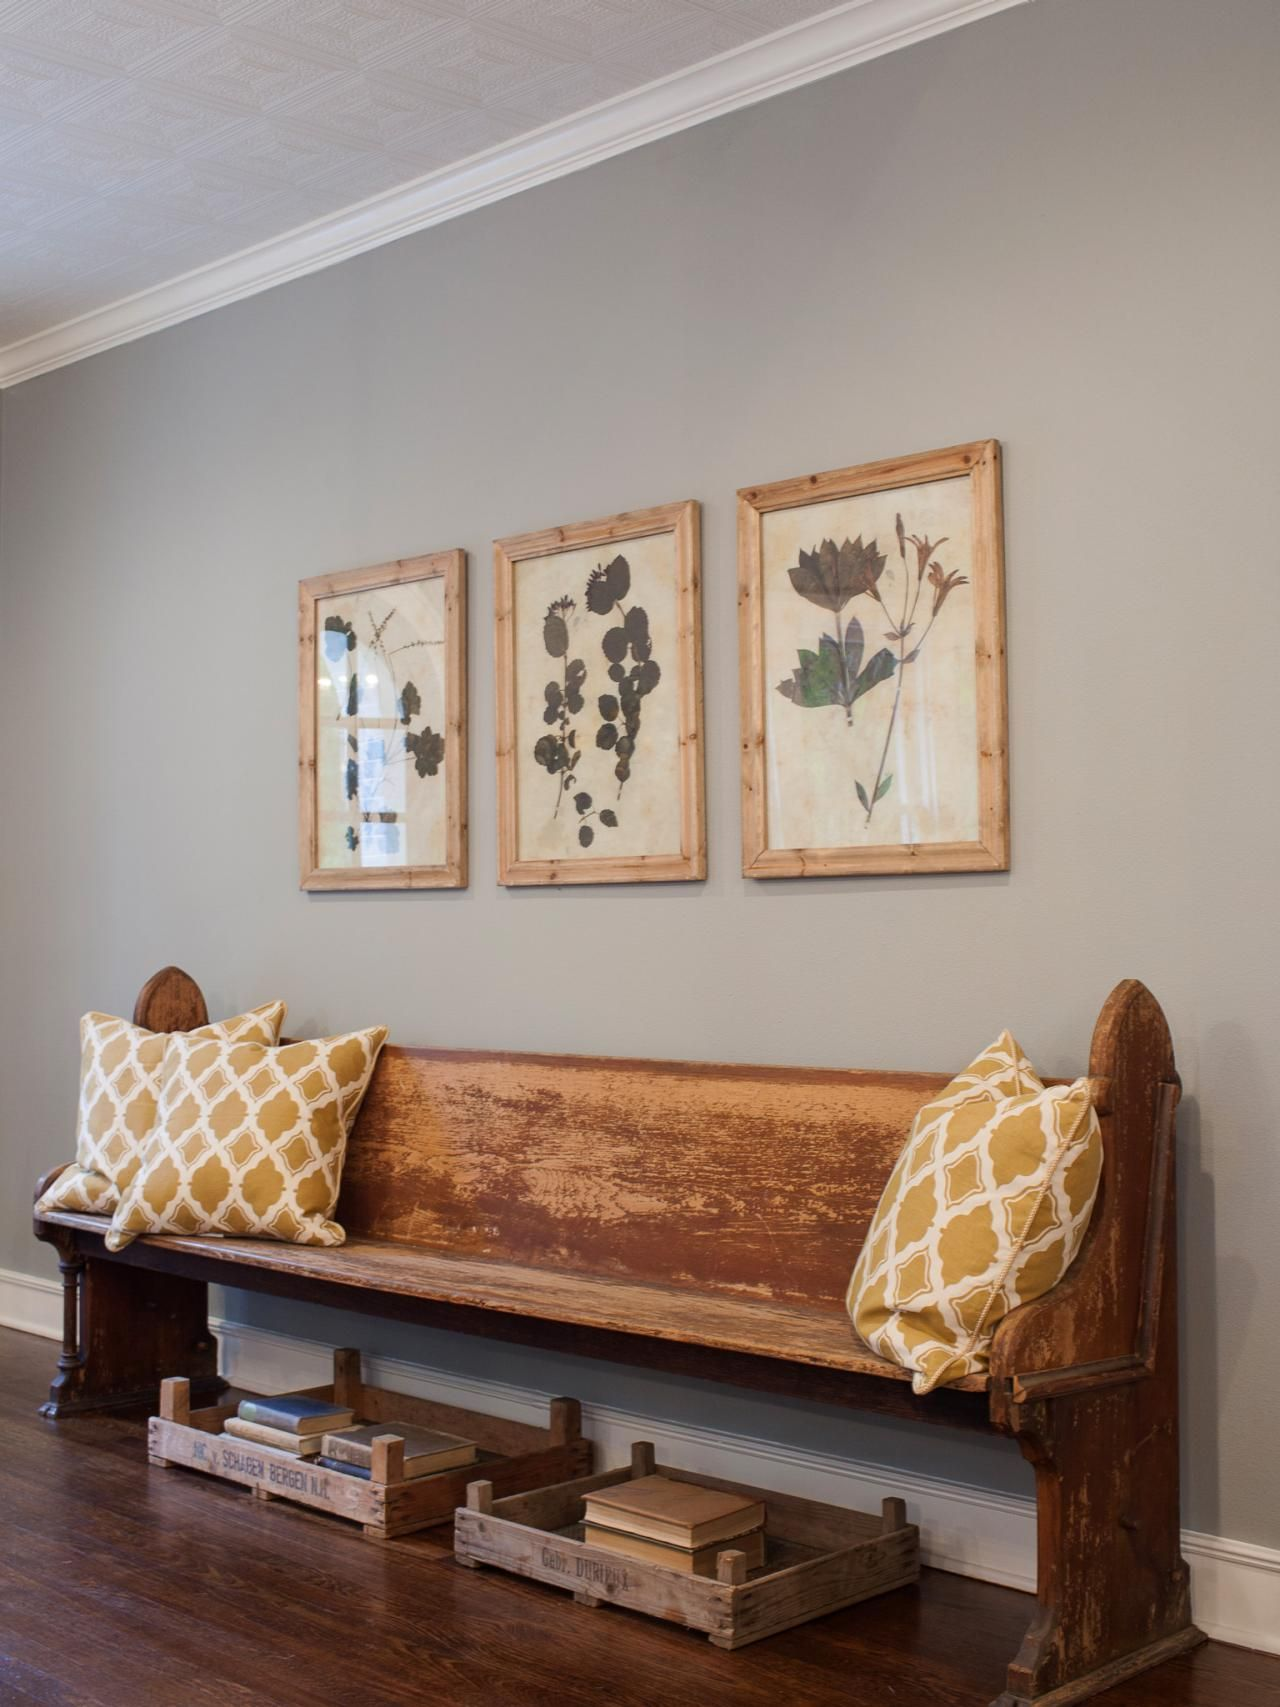 Find The Best Of Hgtv 39 S Fixer Upper With Chip And Joanna Gaines From Hgtv Lakehouse Furniture